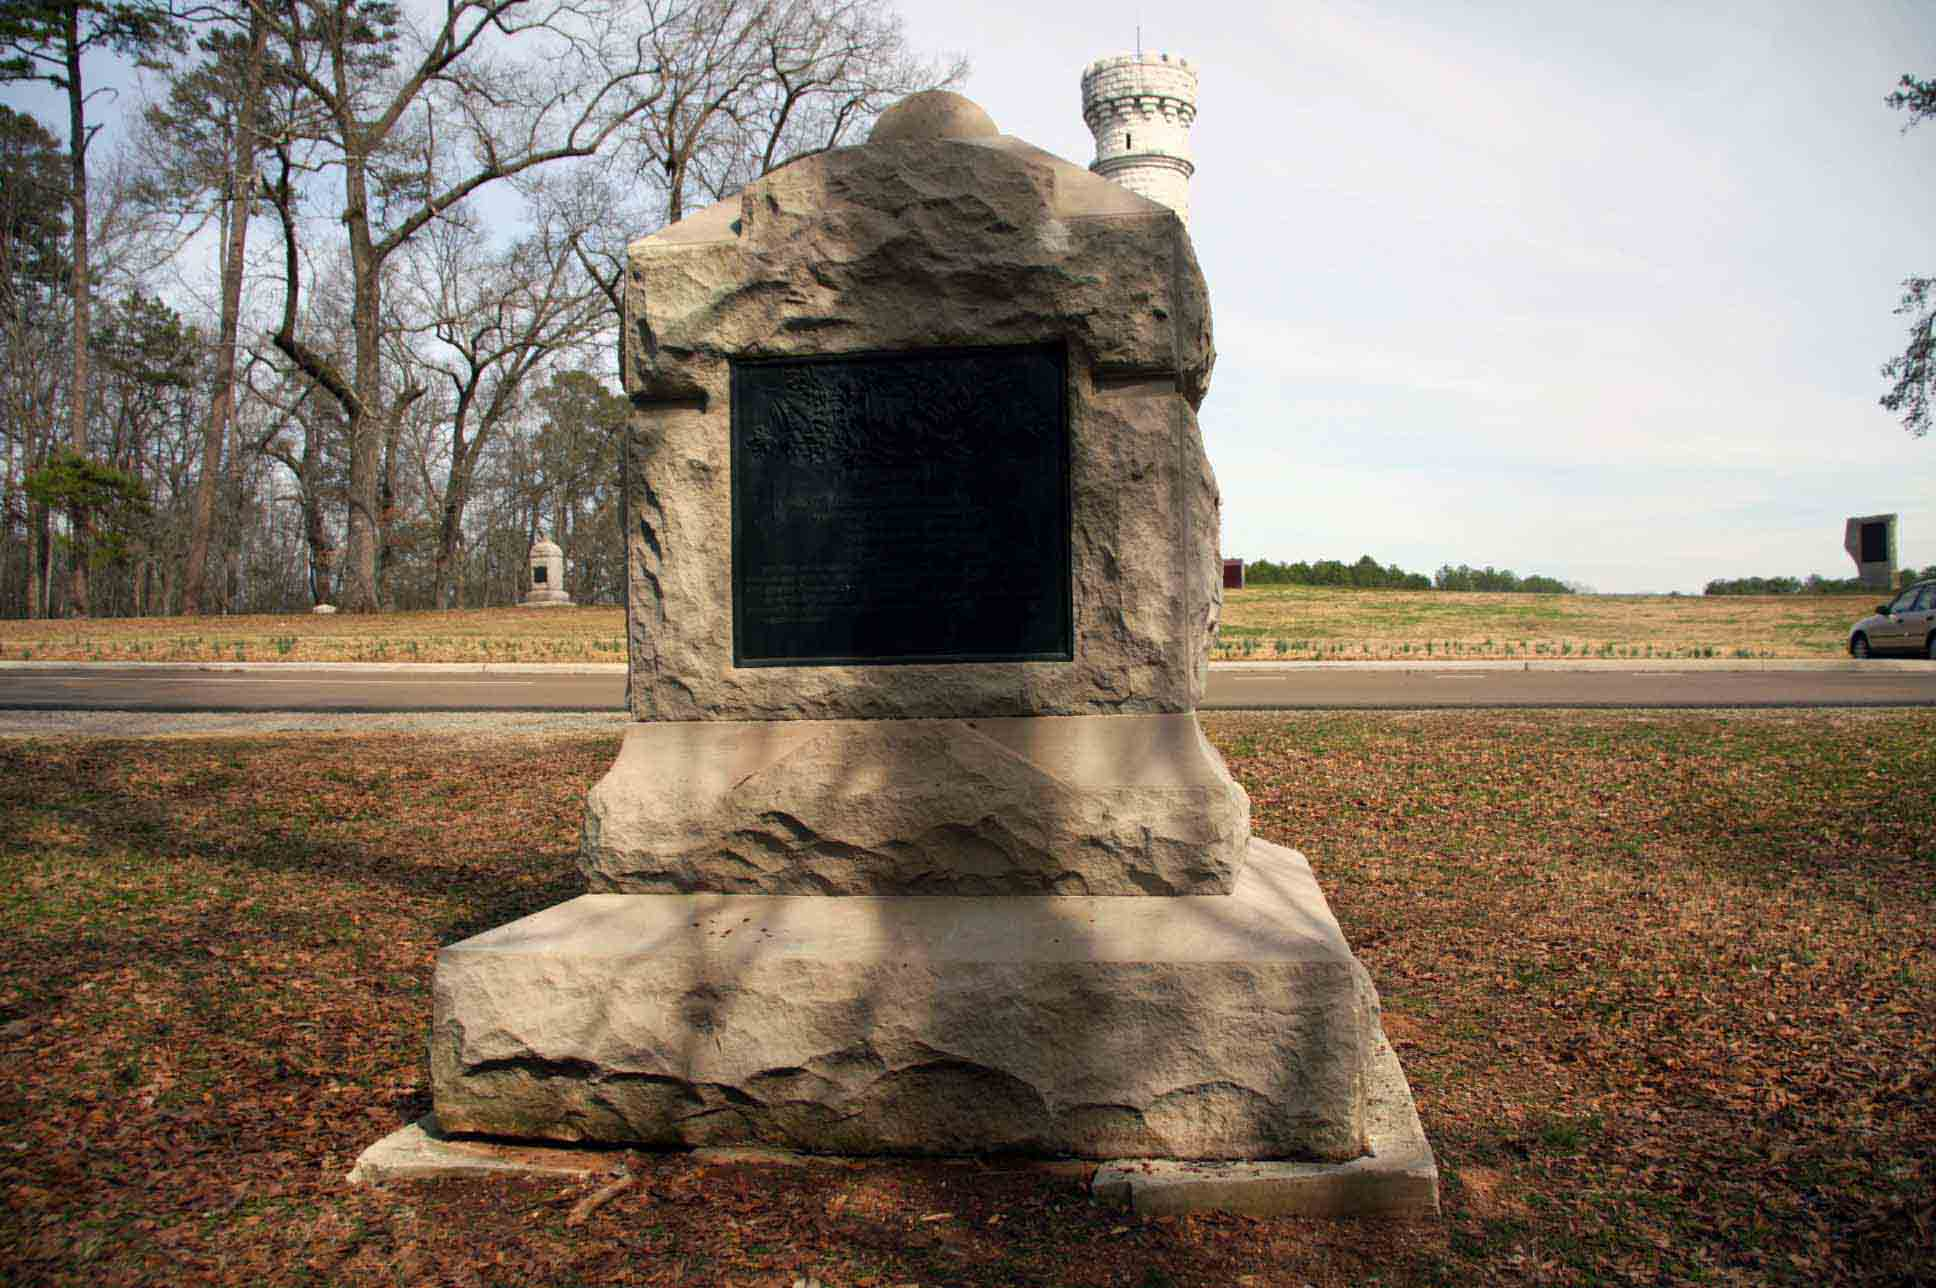 2nd Indiana Cavalry Regiment Monument, click photo to enlarge.